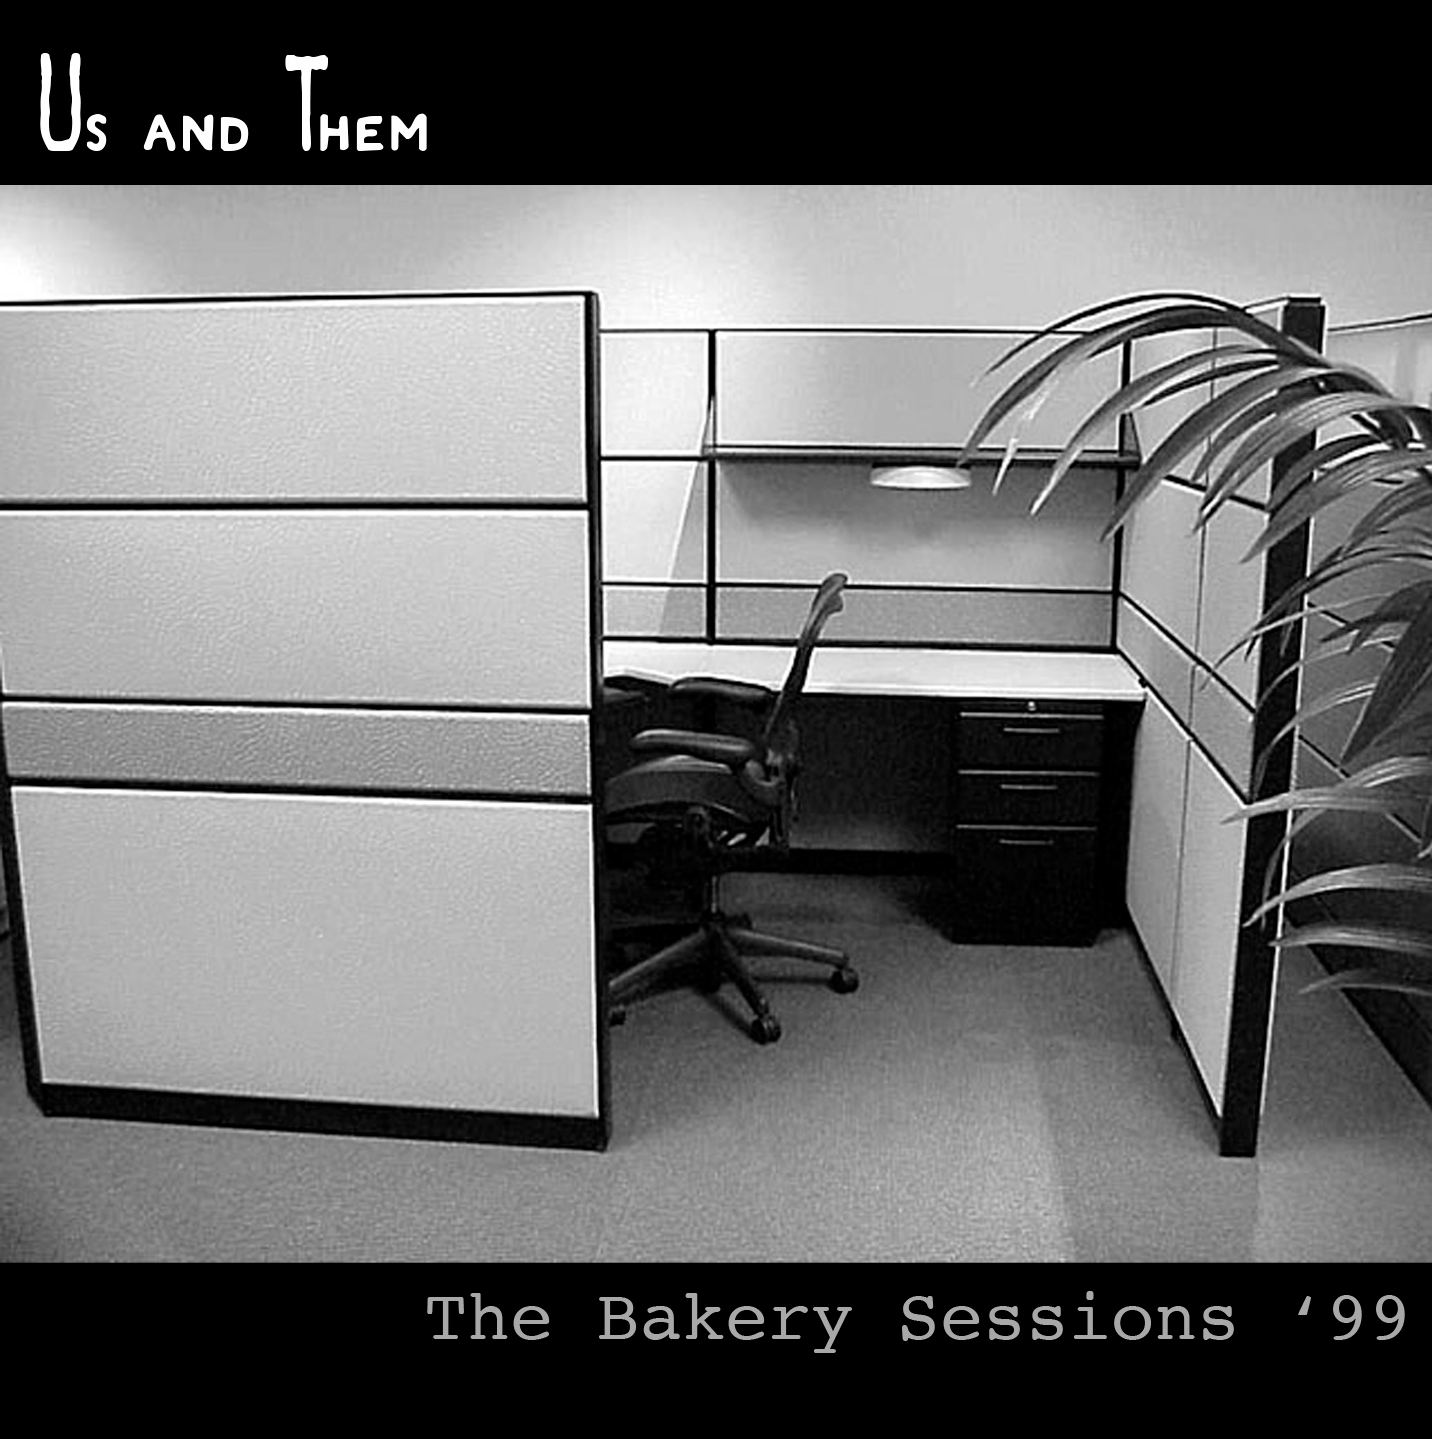 UsThemfront-Bakery Sessions 99